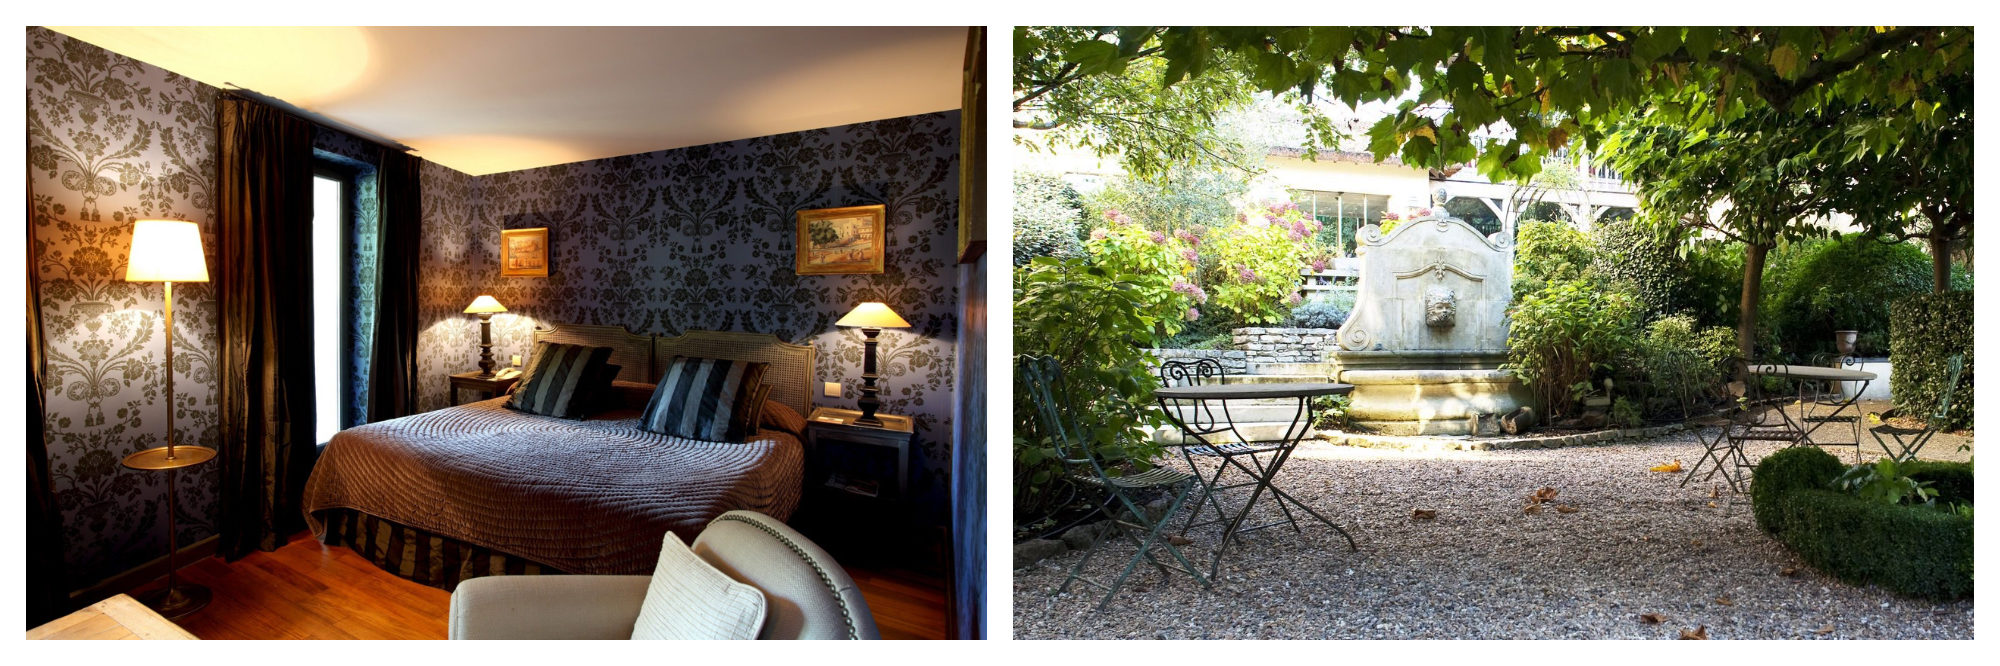 A room at Les Etangs de Corot Hotel with dark printed wallpaper a double bed (left), and the gardens (right).